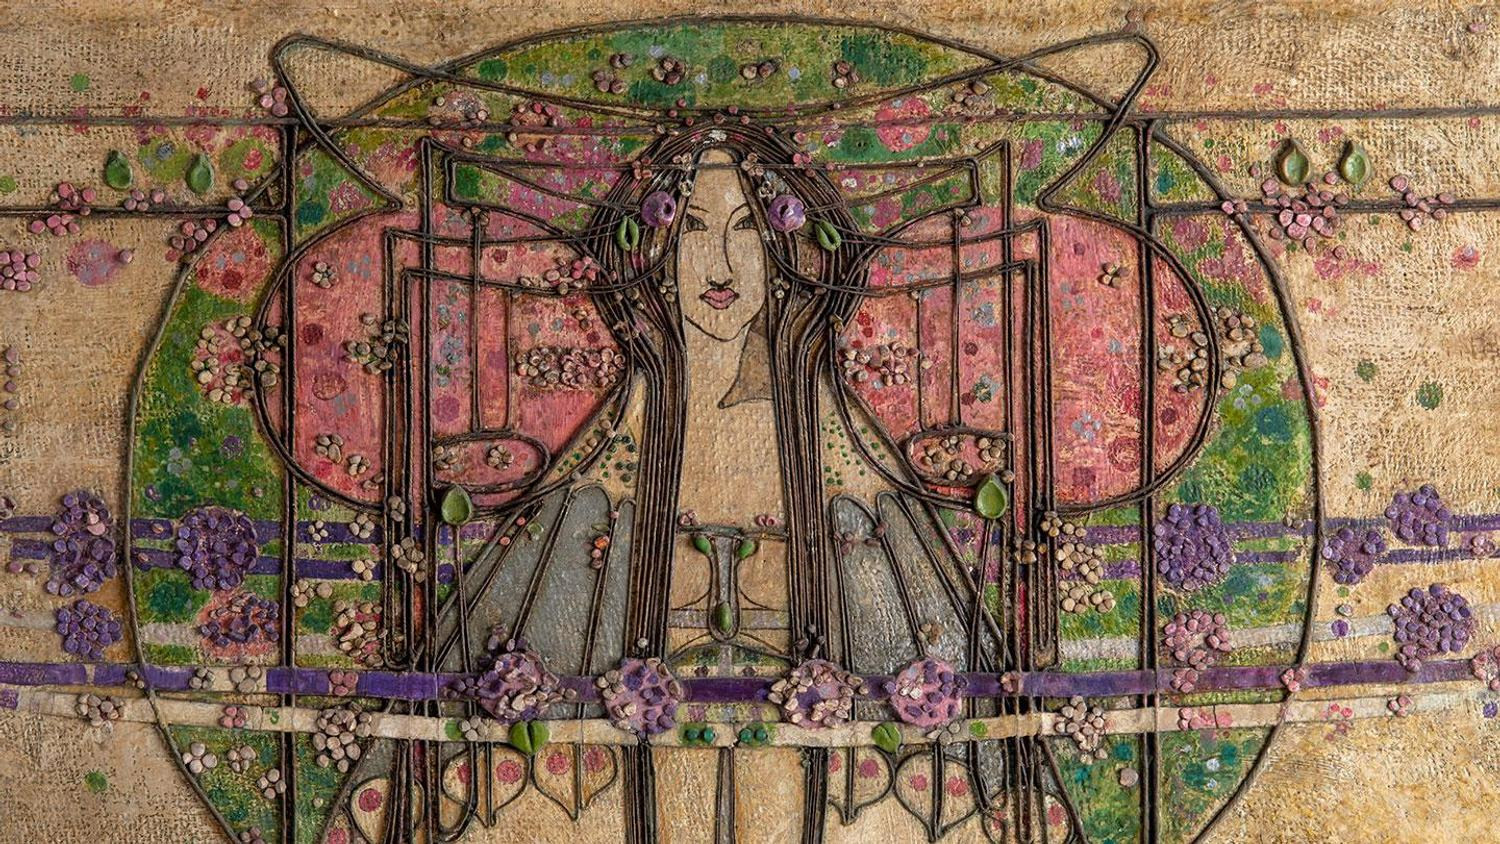 'Designing the New: Charles Rennie Mackintosh and the